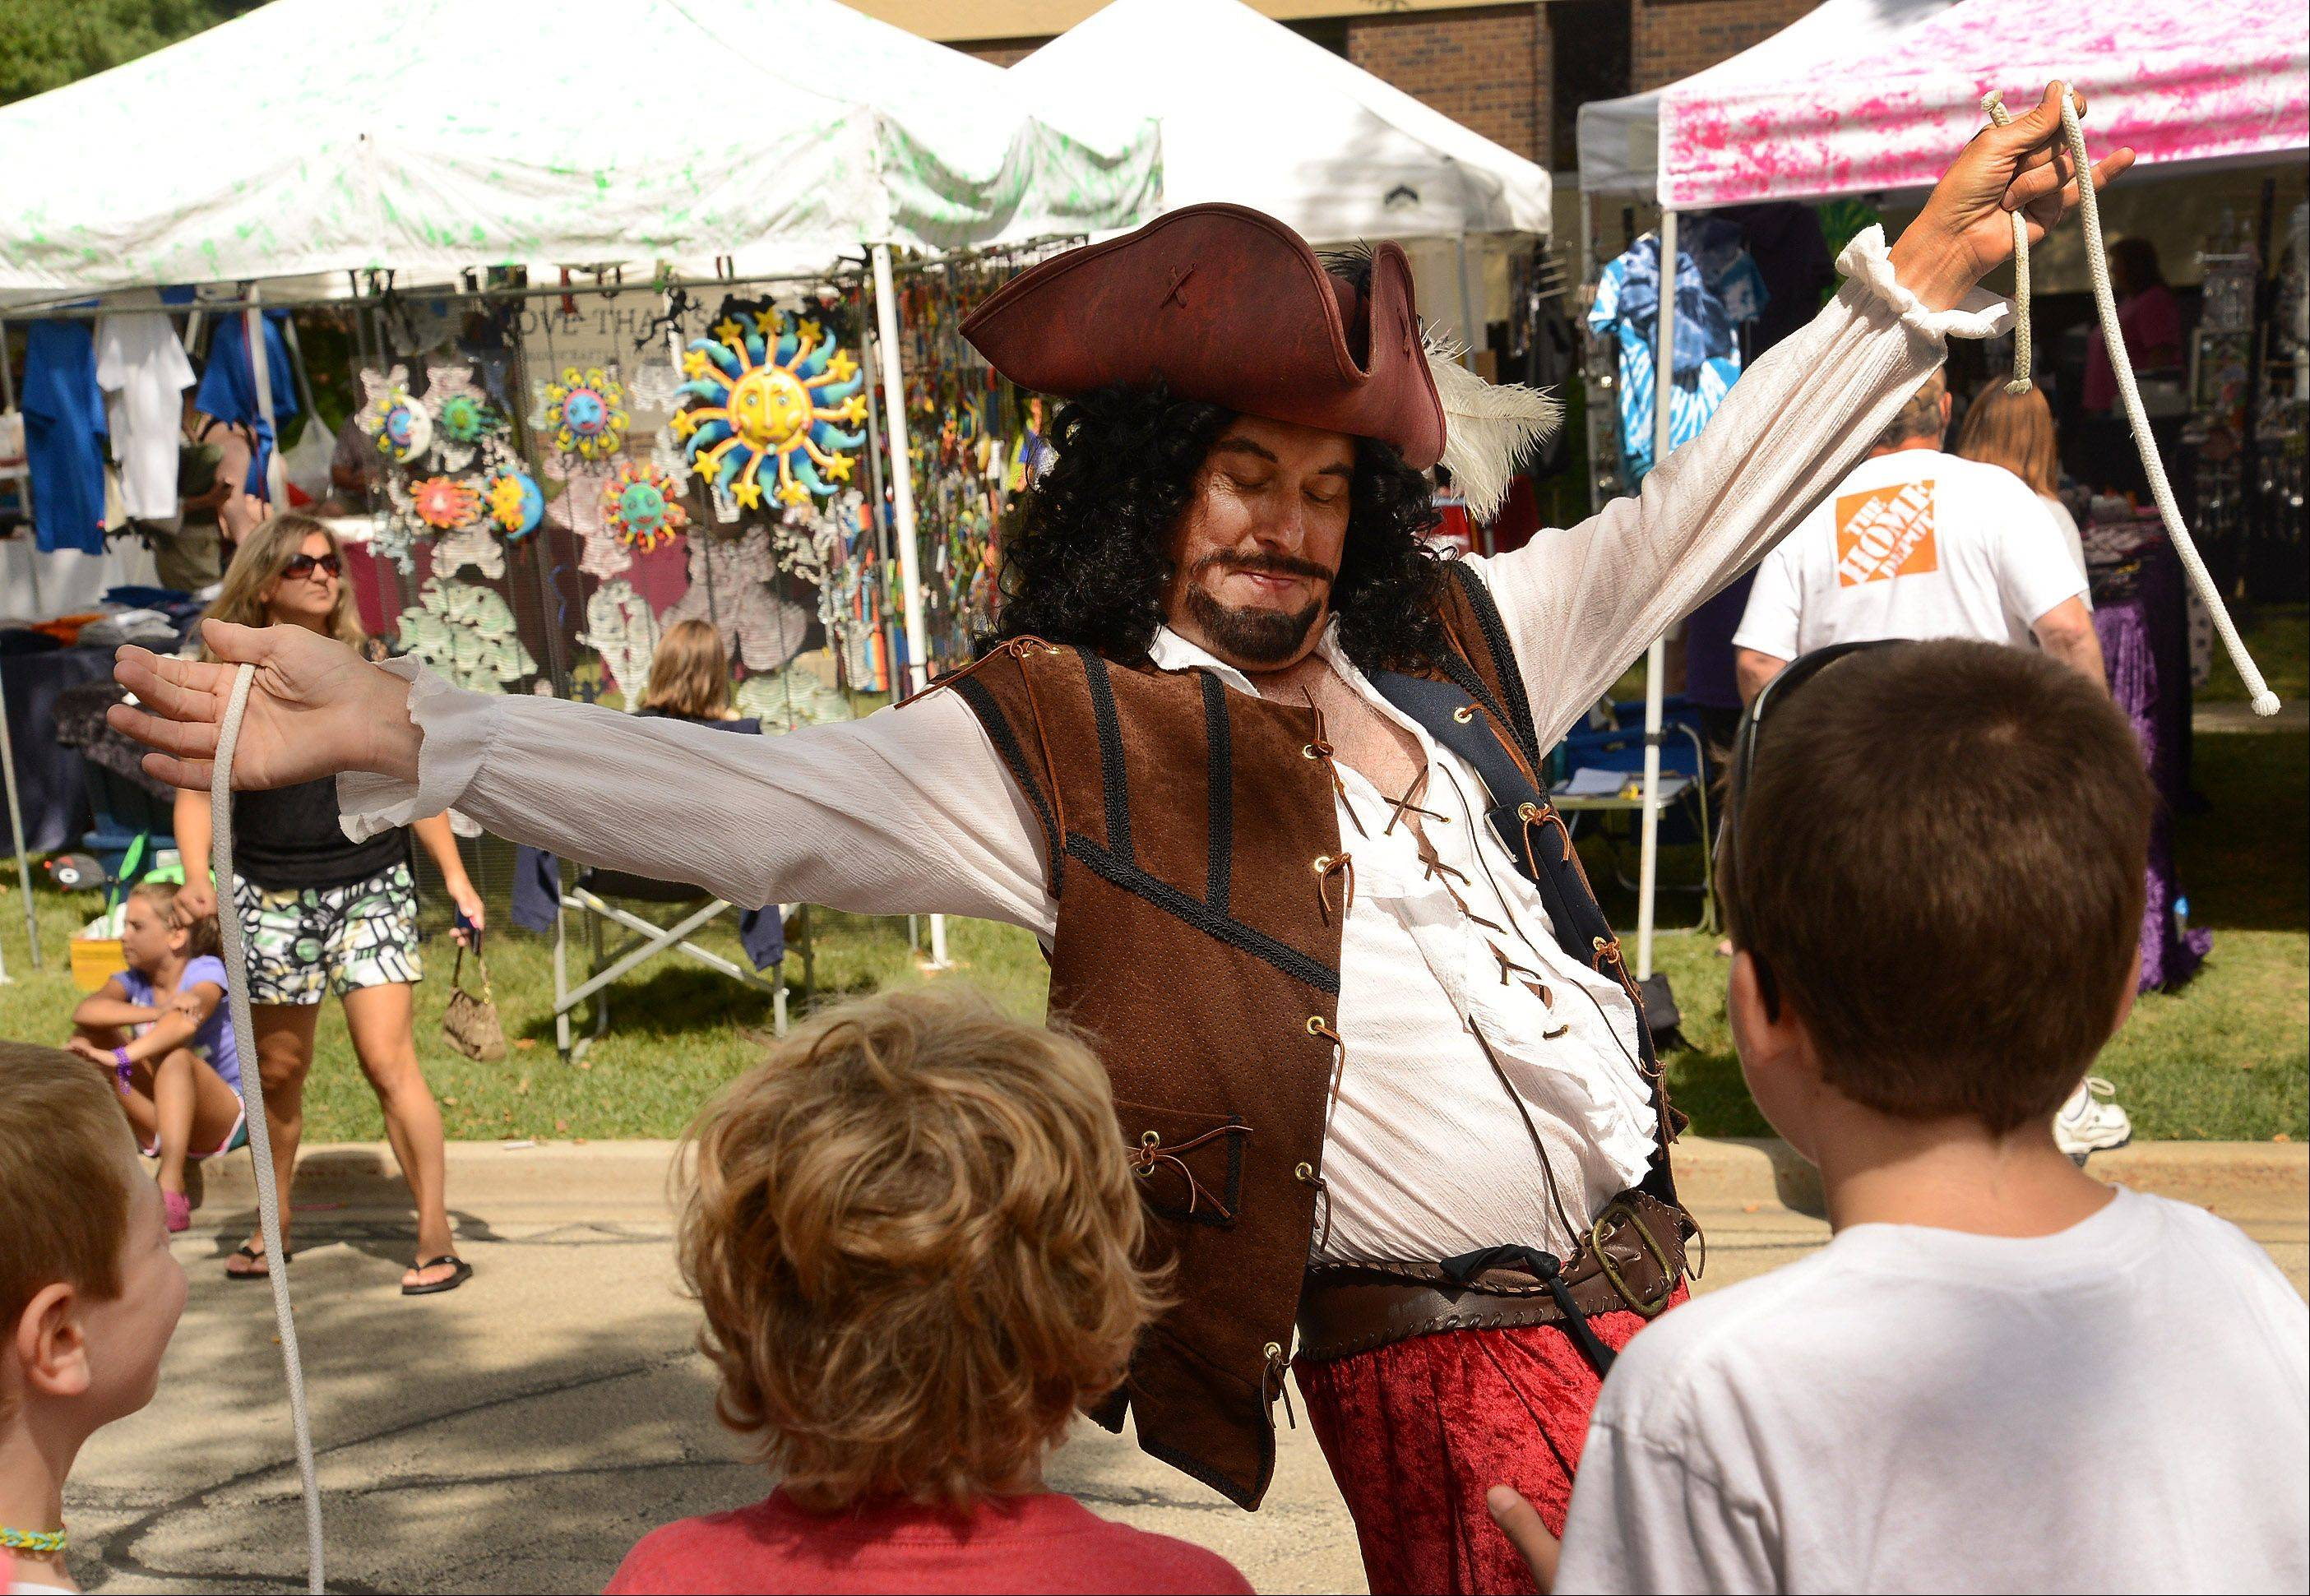 Pete the Pirate performs rope tricks during the fifth and final day of Buffalo Grove Days.